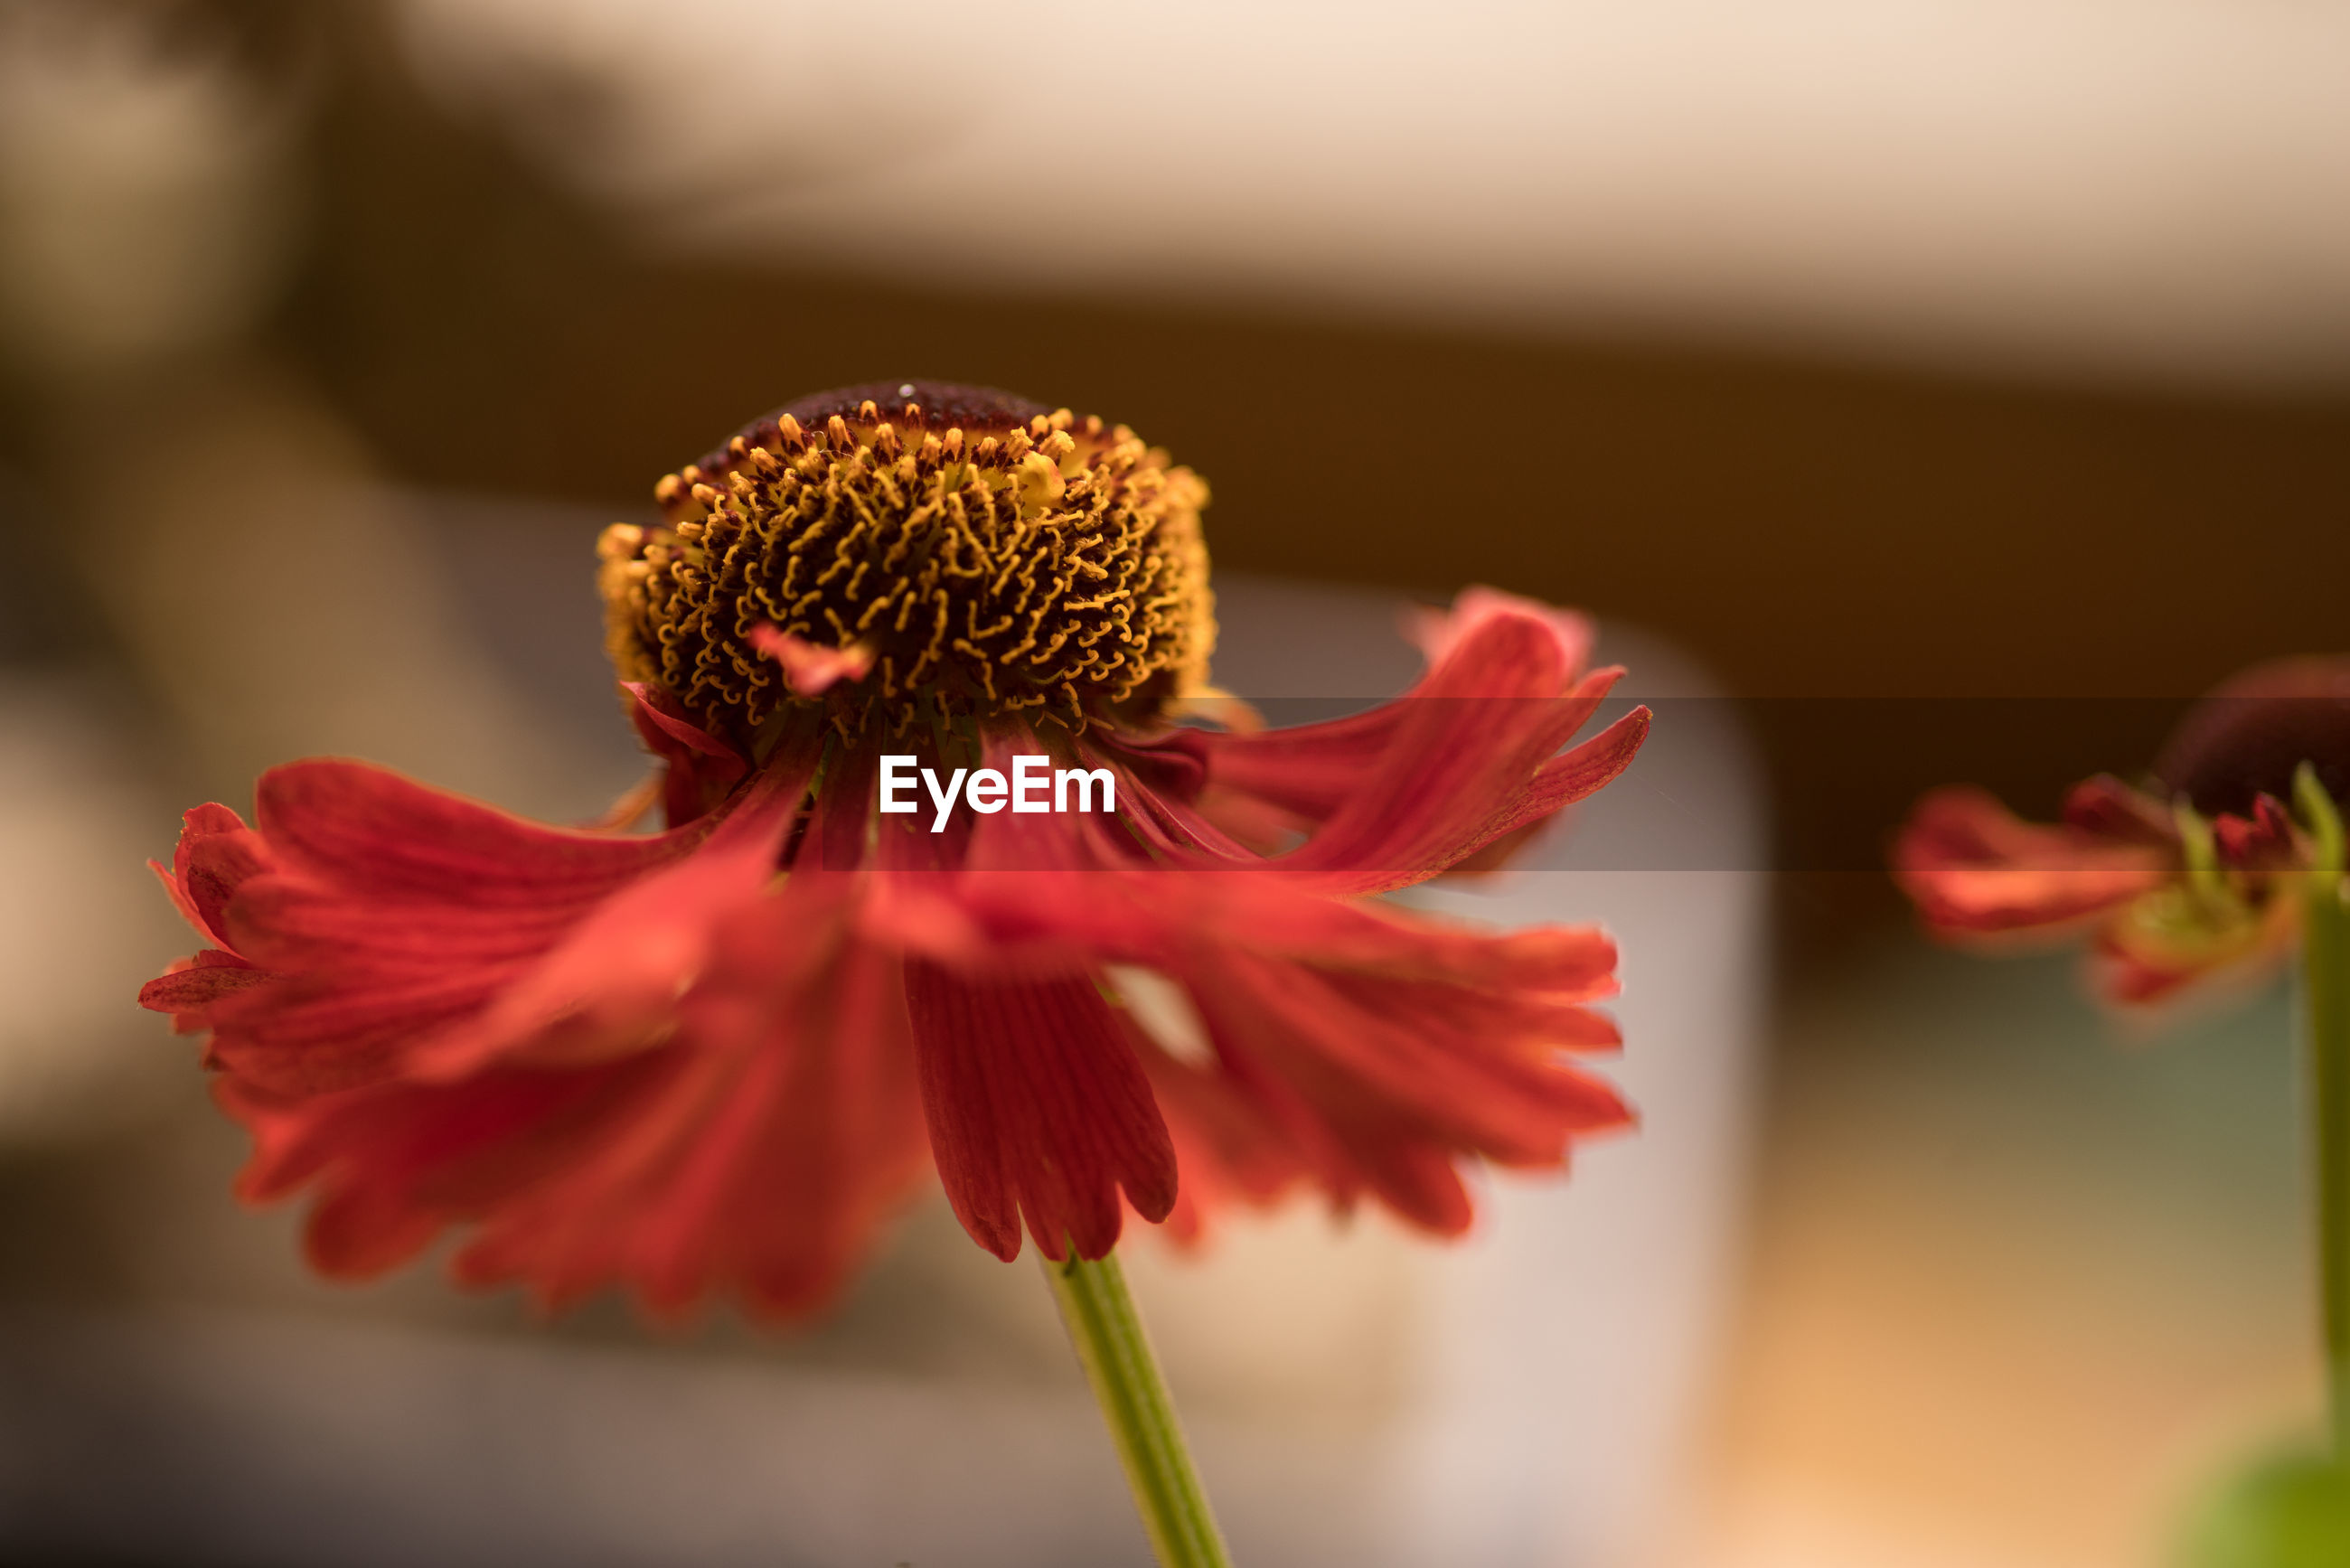 CLOSE-UP OF RED FLOWER BLOOMING